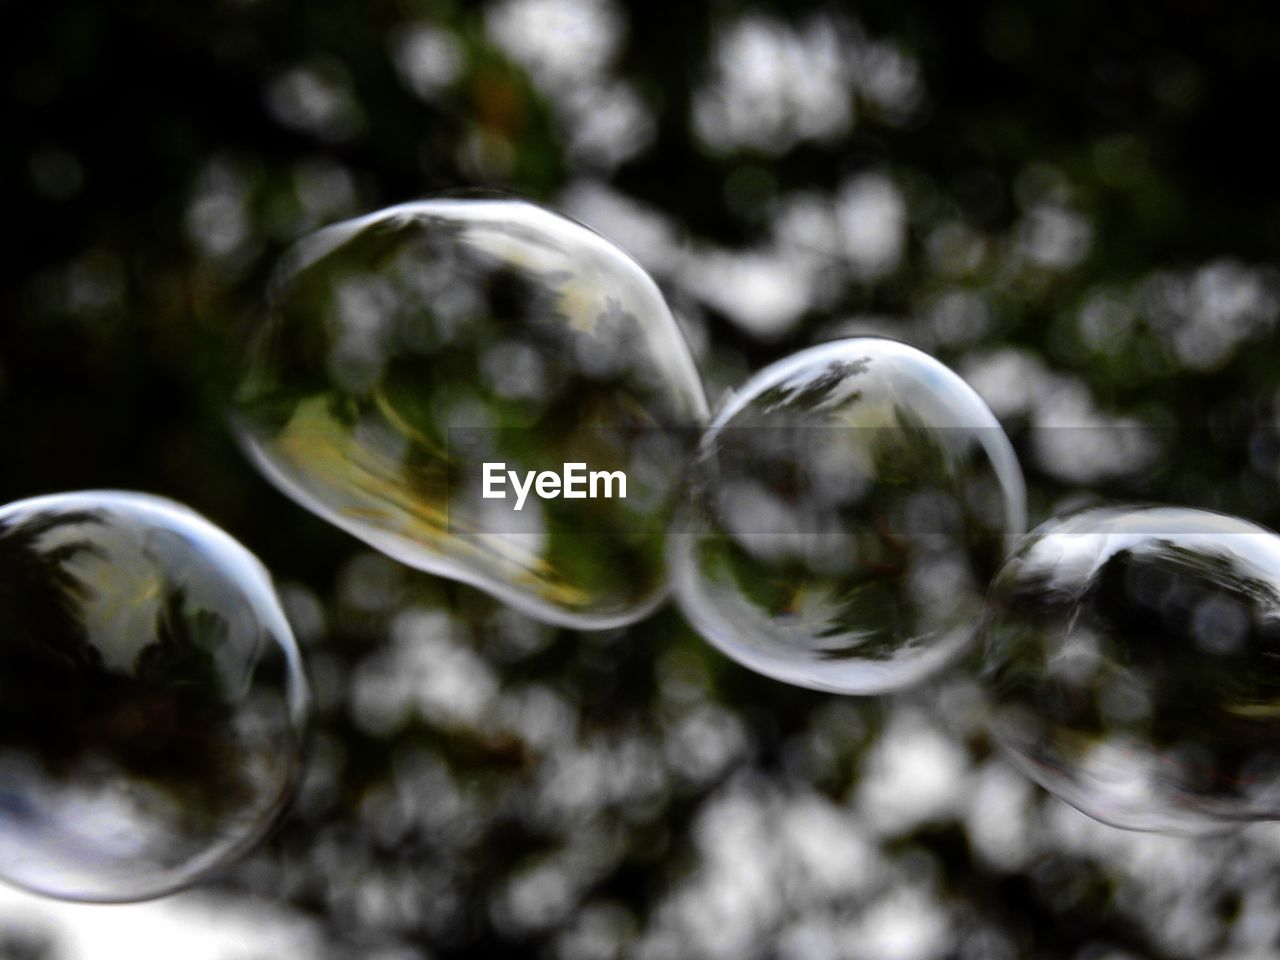 bubble, fragility, bubble wand, shape, reflection, no people, shiny, crystal ball, selective focus, close-up, ball, curve, outdoors, nature, day, refraction, spectrum